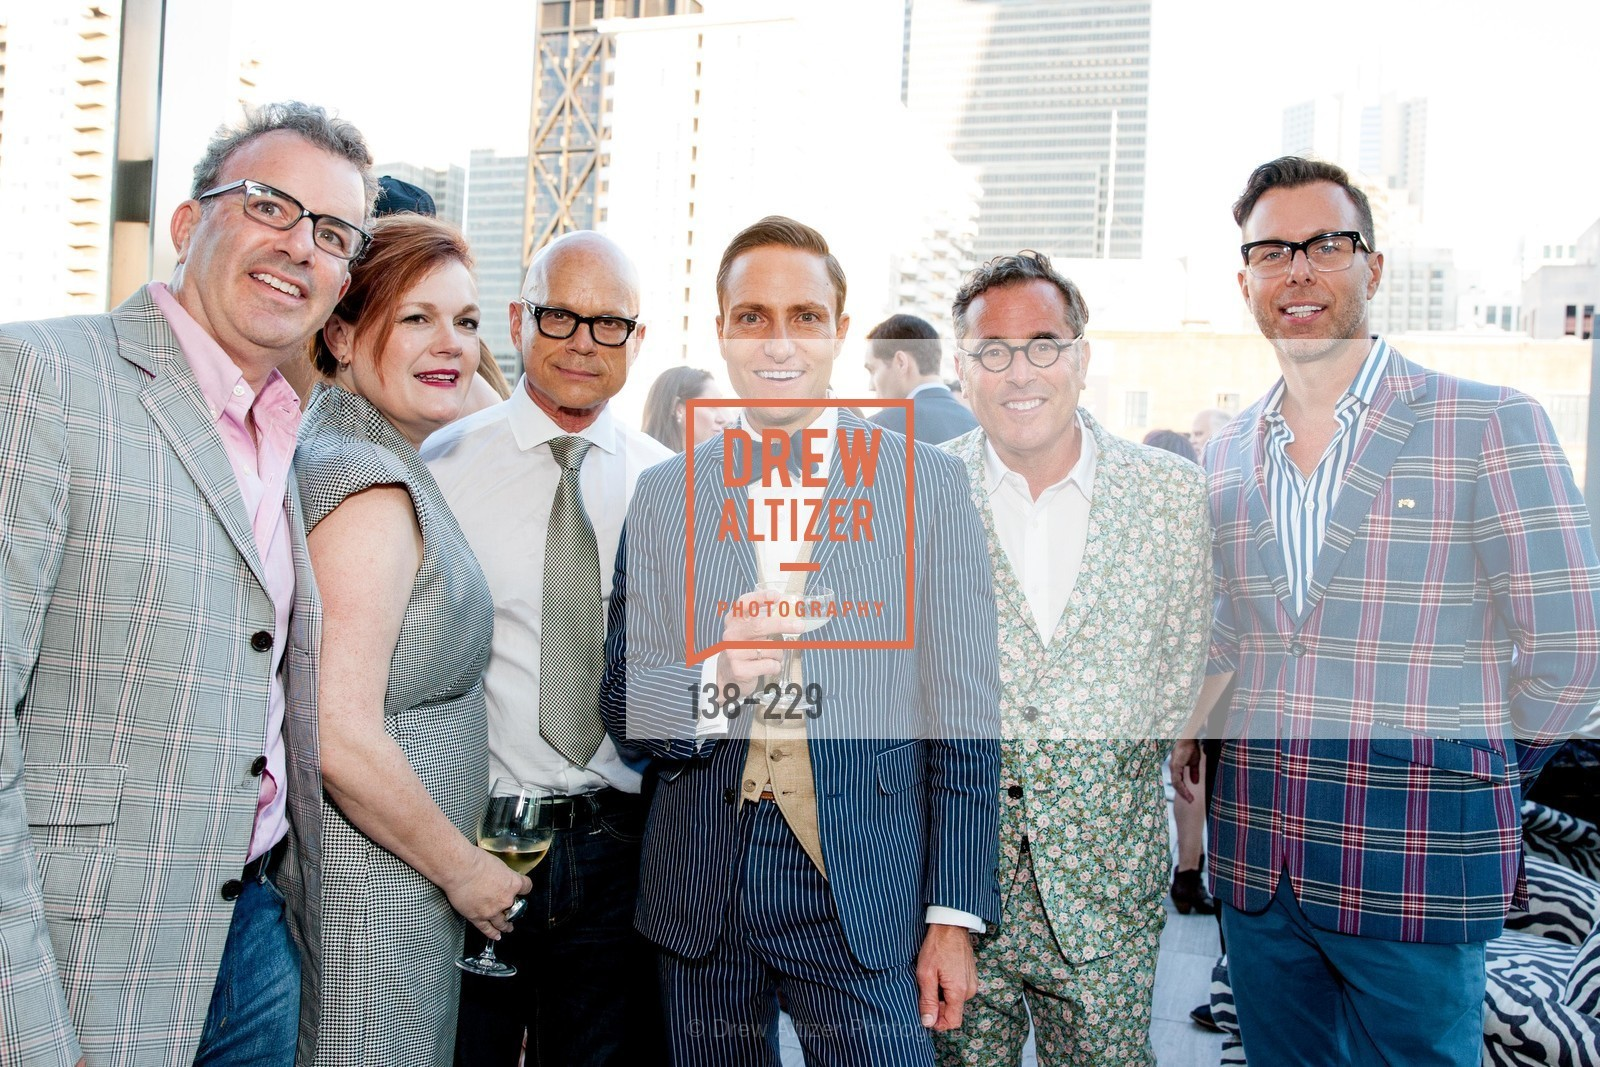 Mitchell Benjamin, Jennifer Riaser, Kevin Sessums, Ken Fulk, Ricky Serbin, Brian Anderson, Ken Fulk Collection Arrival Party At The Battery, Battery. 717 Battery St, August 12th, 2015,Drew Altizer, Drew Altizer Photography, full-service agency, private events, San Francisco photographer, photographer california